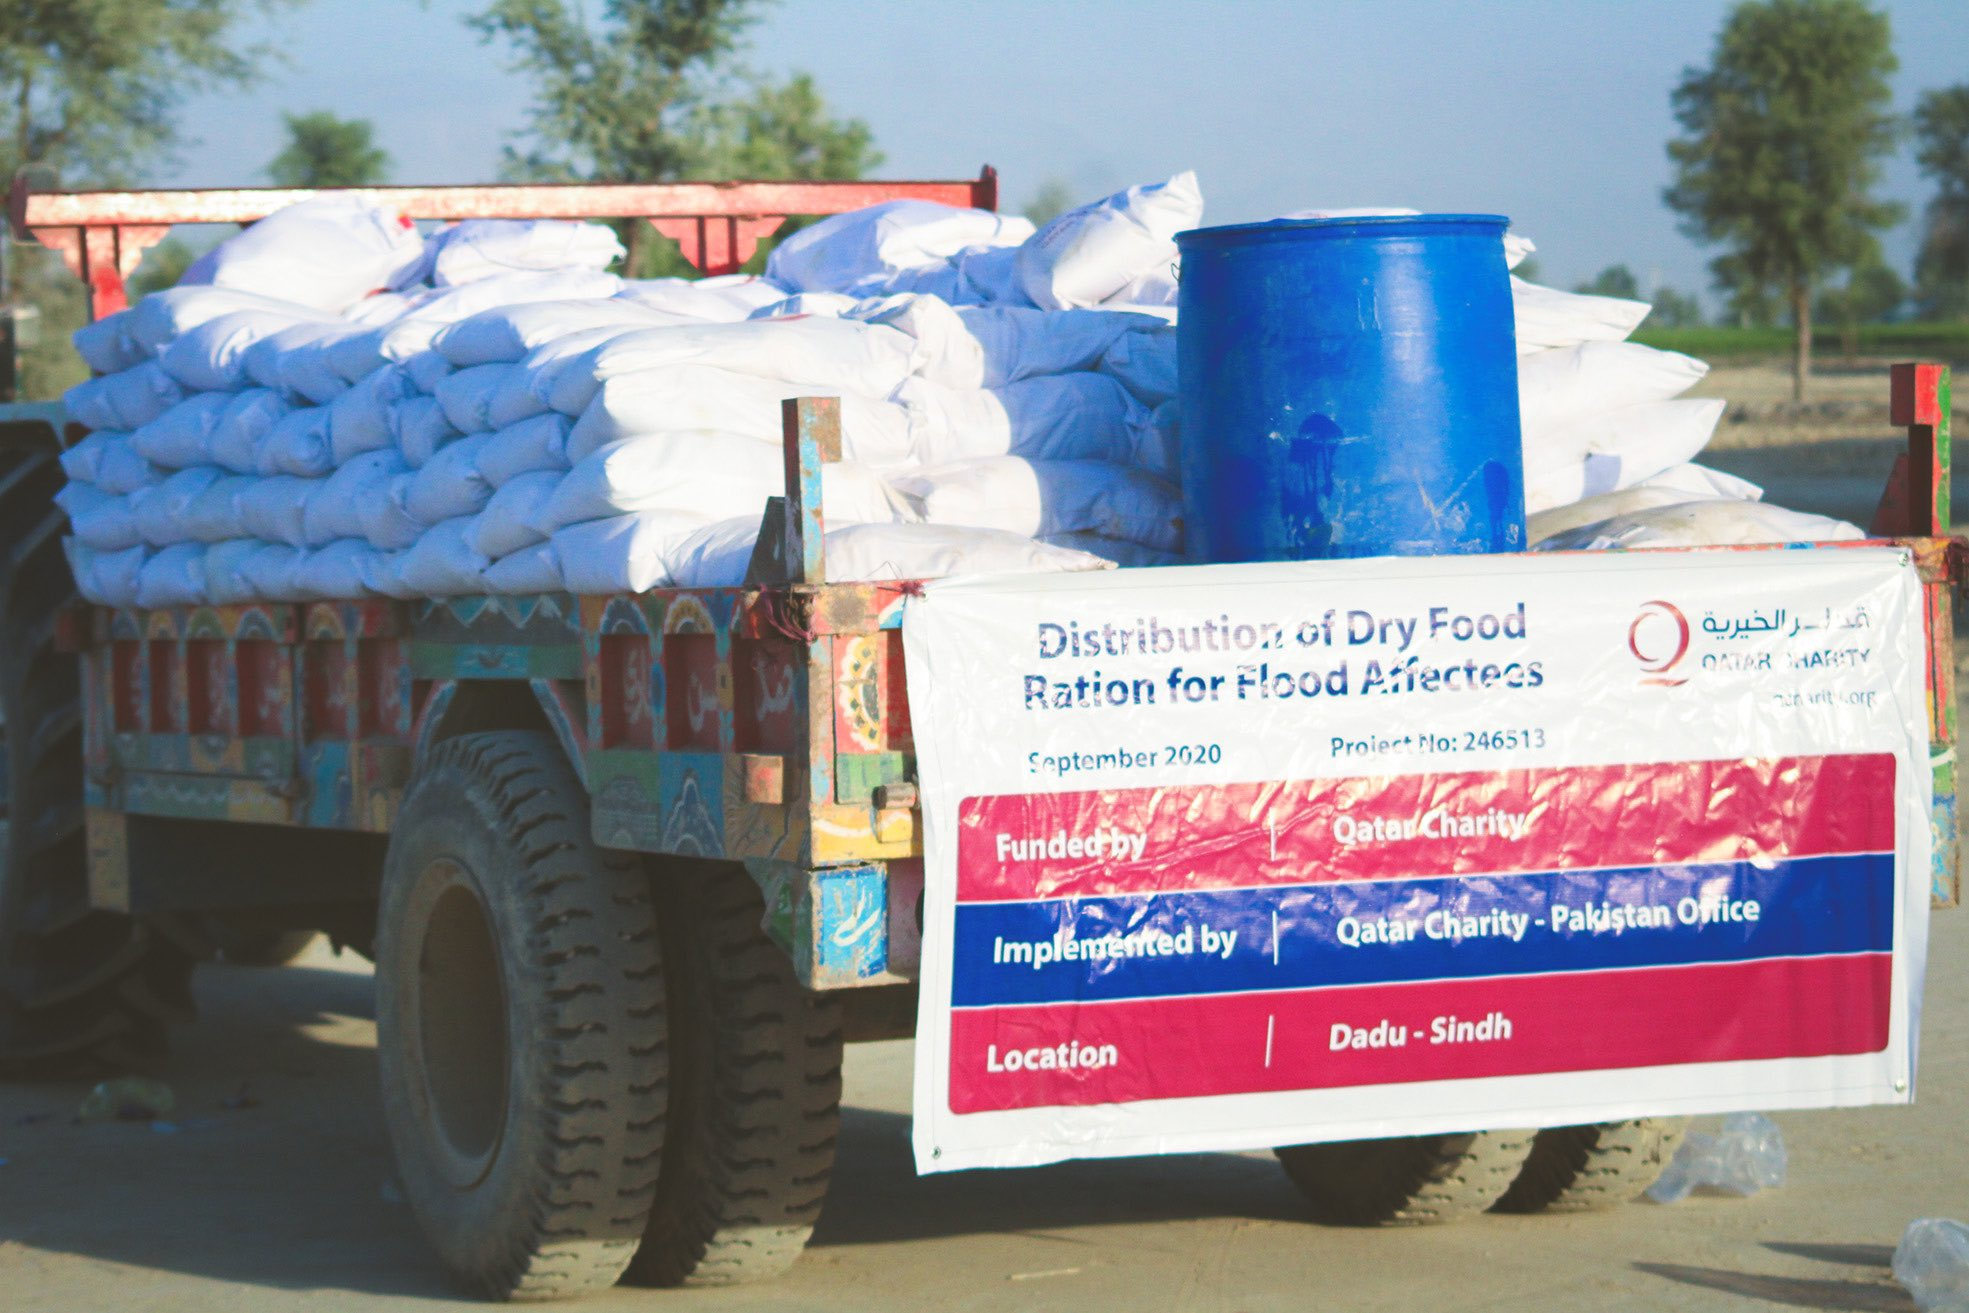 Qatar Charity Delivers Aid to People Affected by Floods in Pakistan